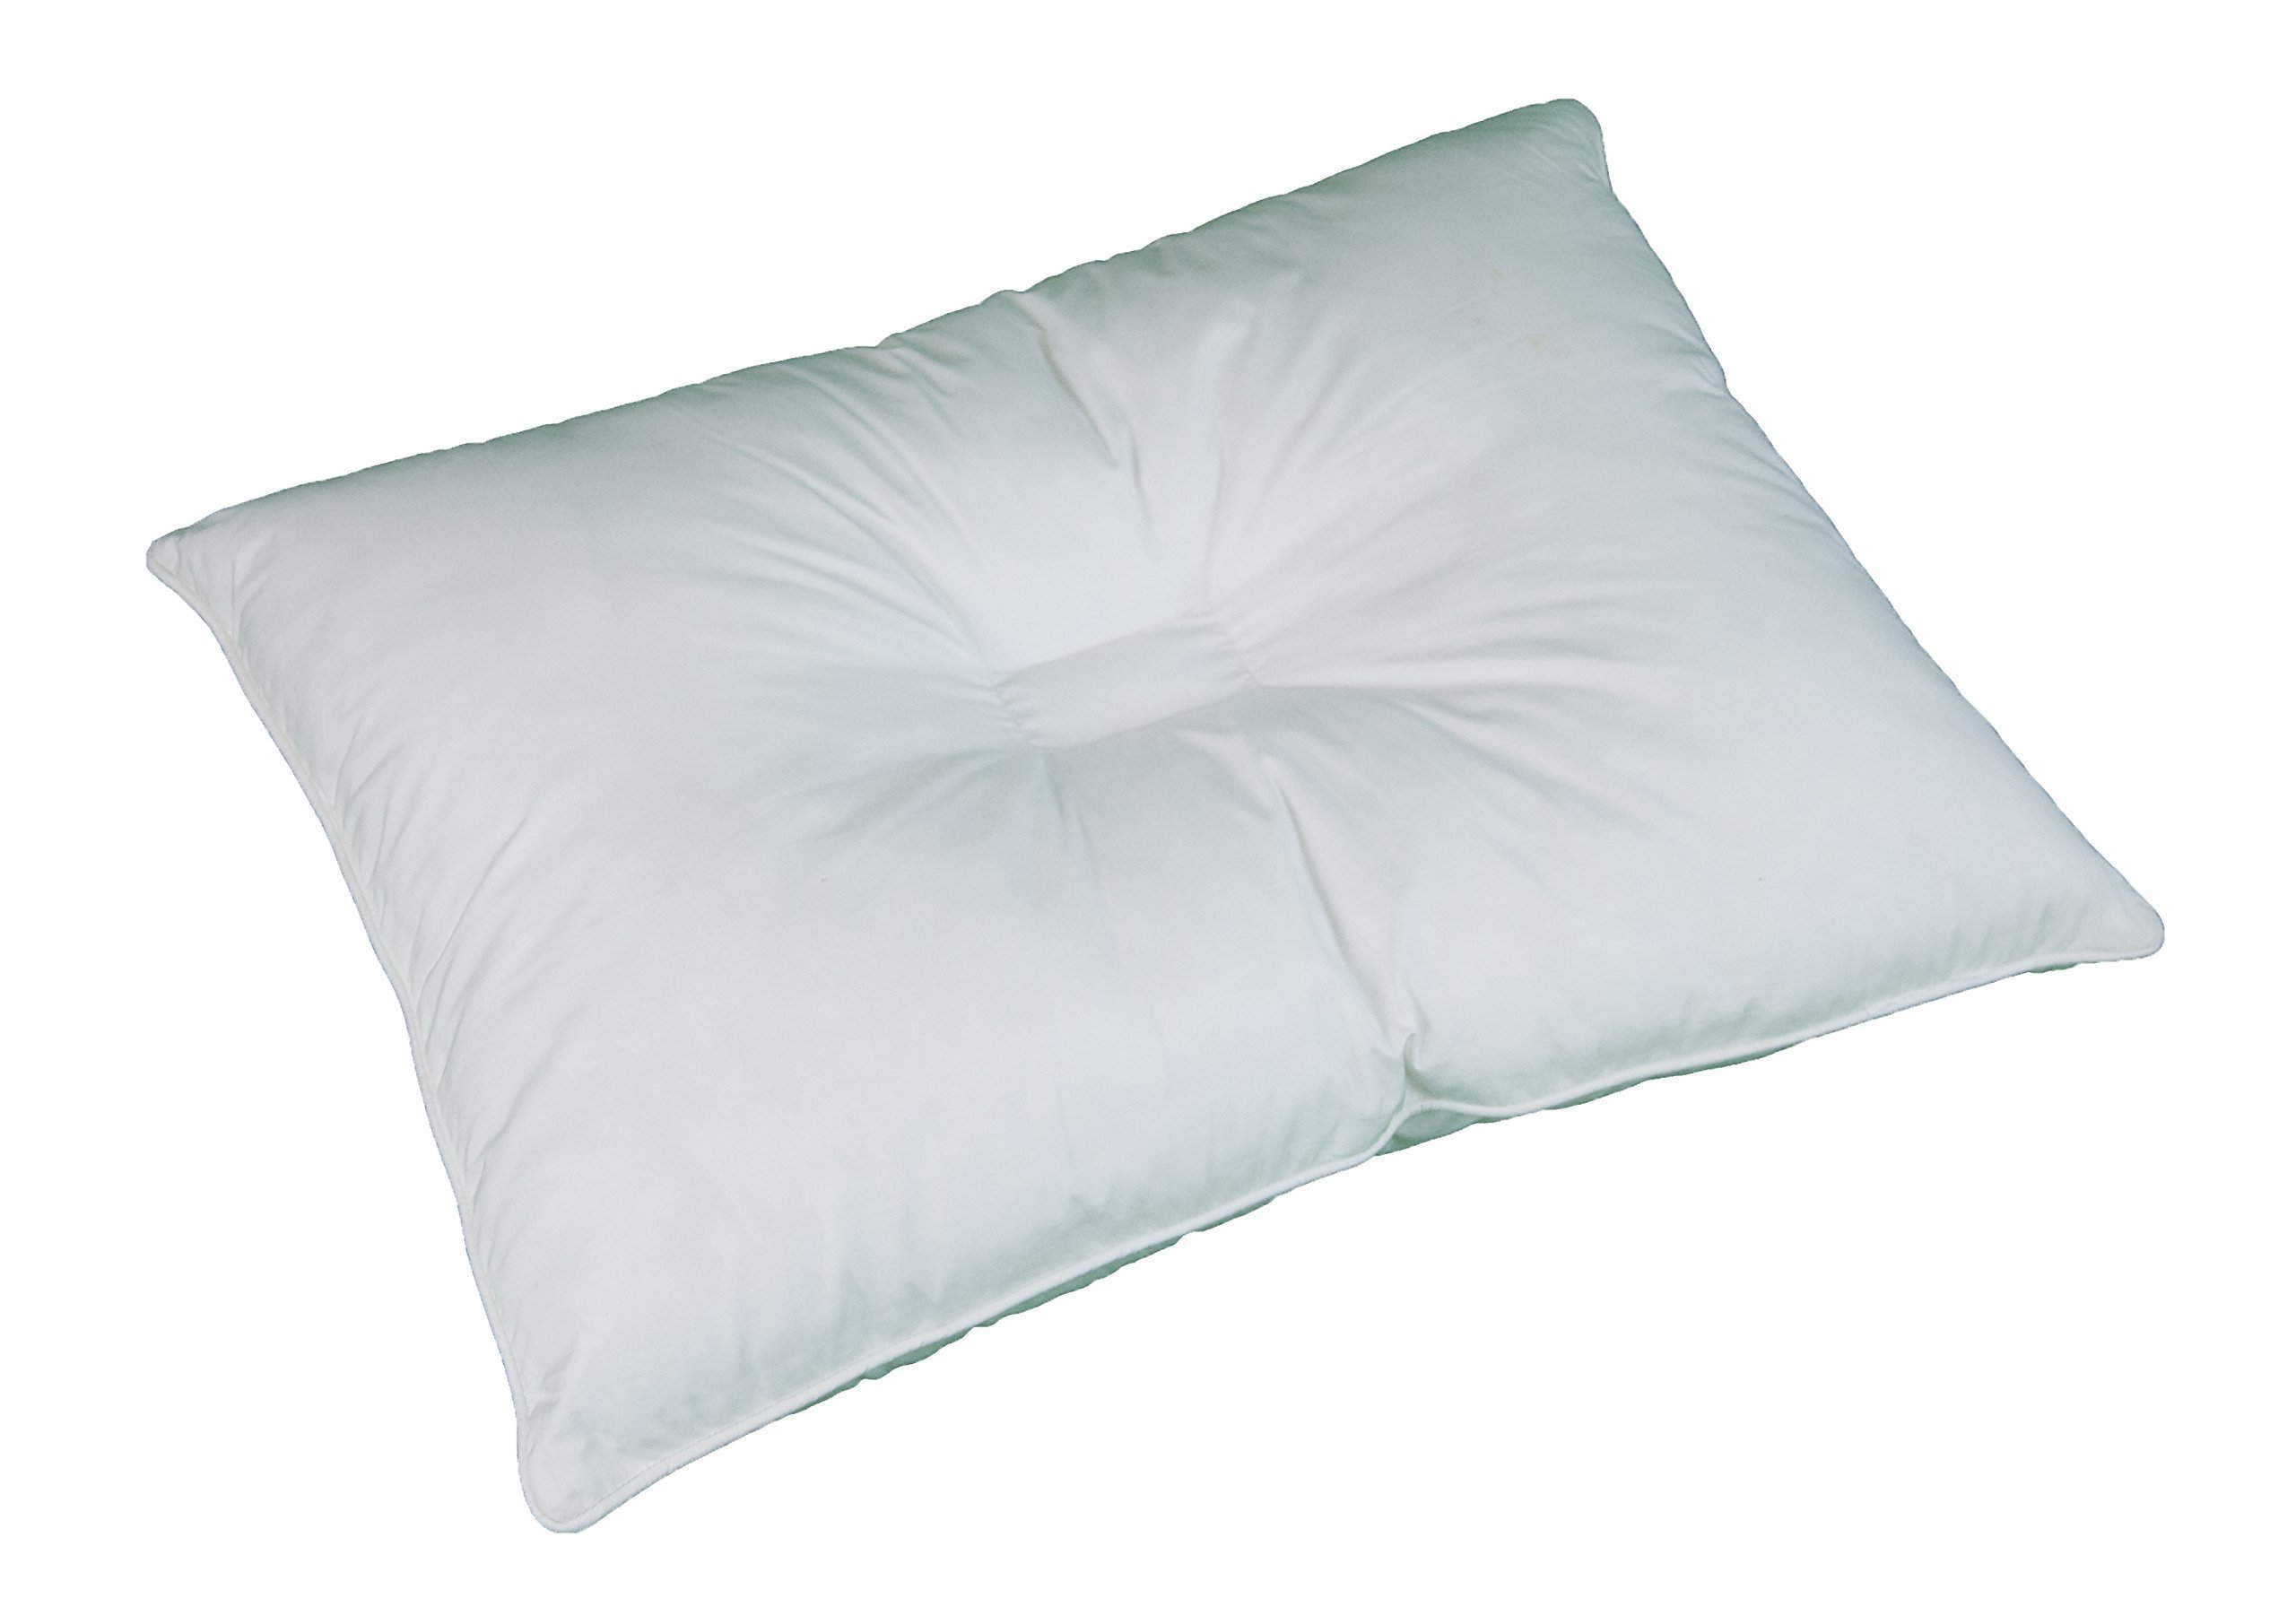 SLEEPHI Collection #1 Hypoallergenic Microfiber LARGE Pillow Ideal Back & Stomach Sleepers | Unique Design to Prevent Neck Problems | Soft Pillow | King 20'' x 36''